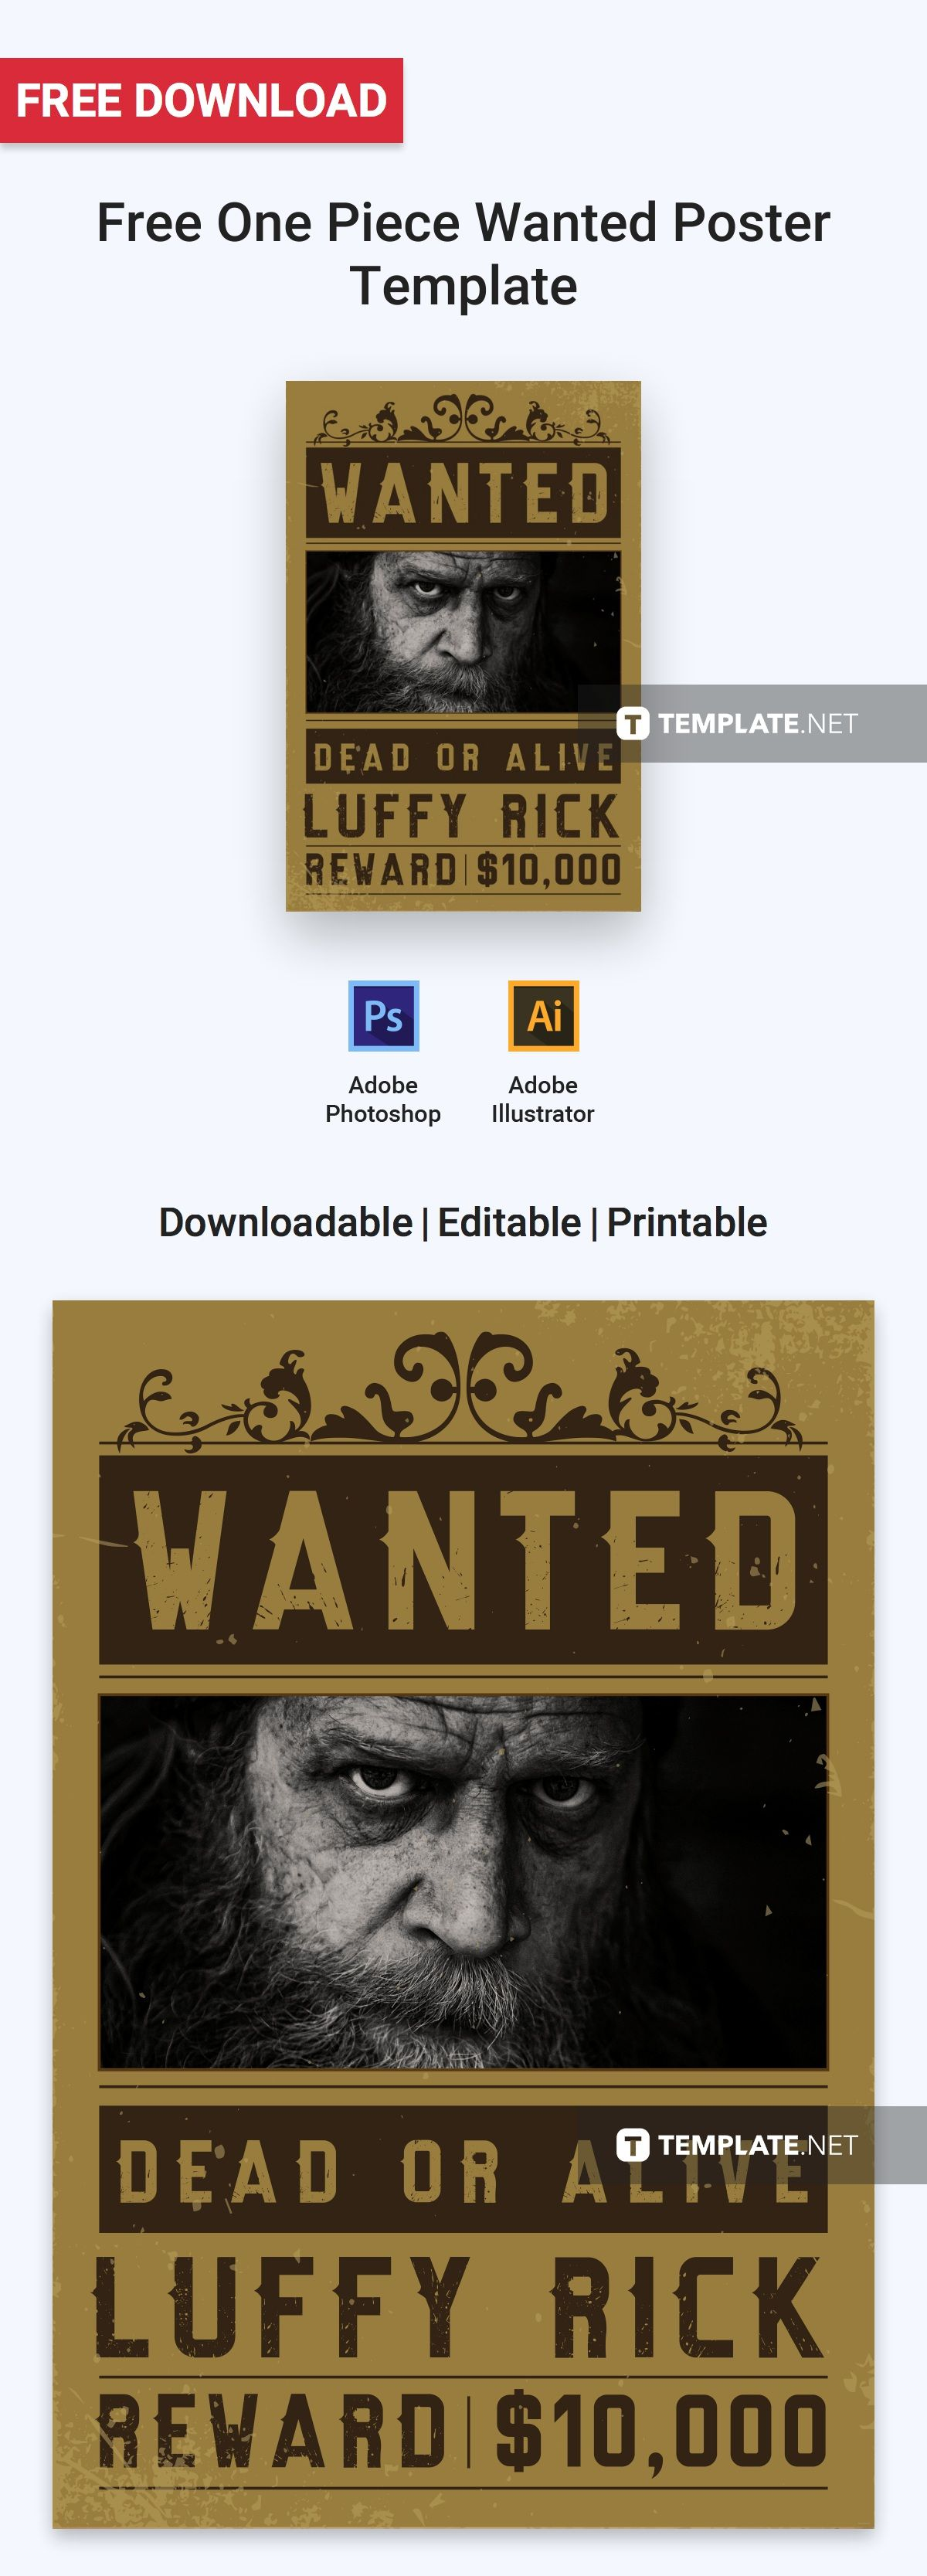 free one piece wanted poster poster templates designs 2019